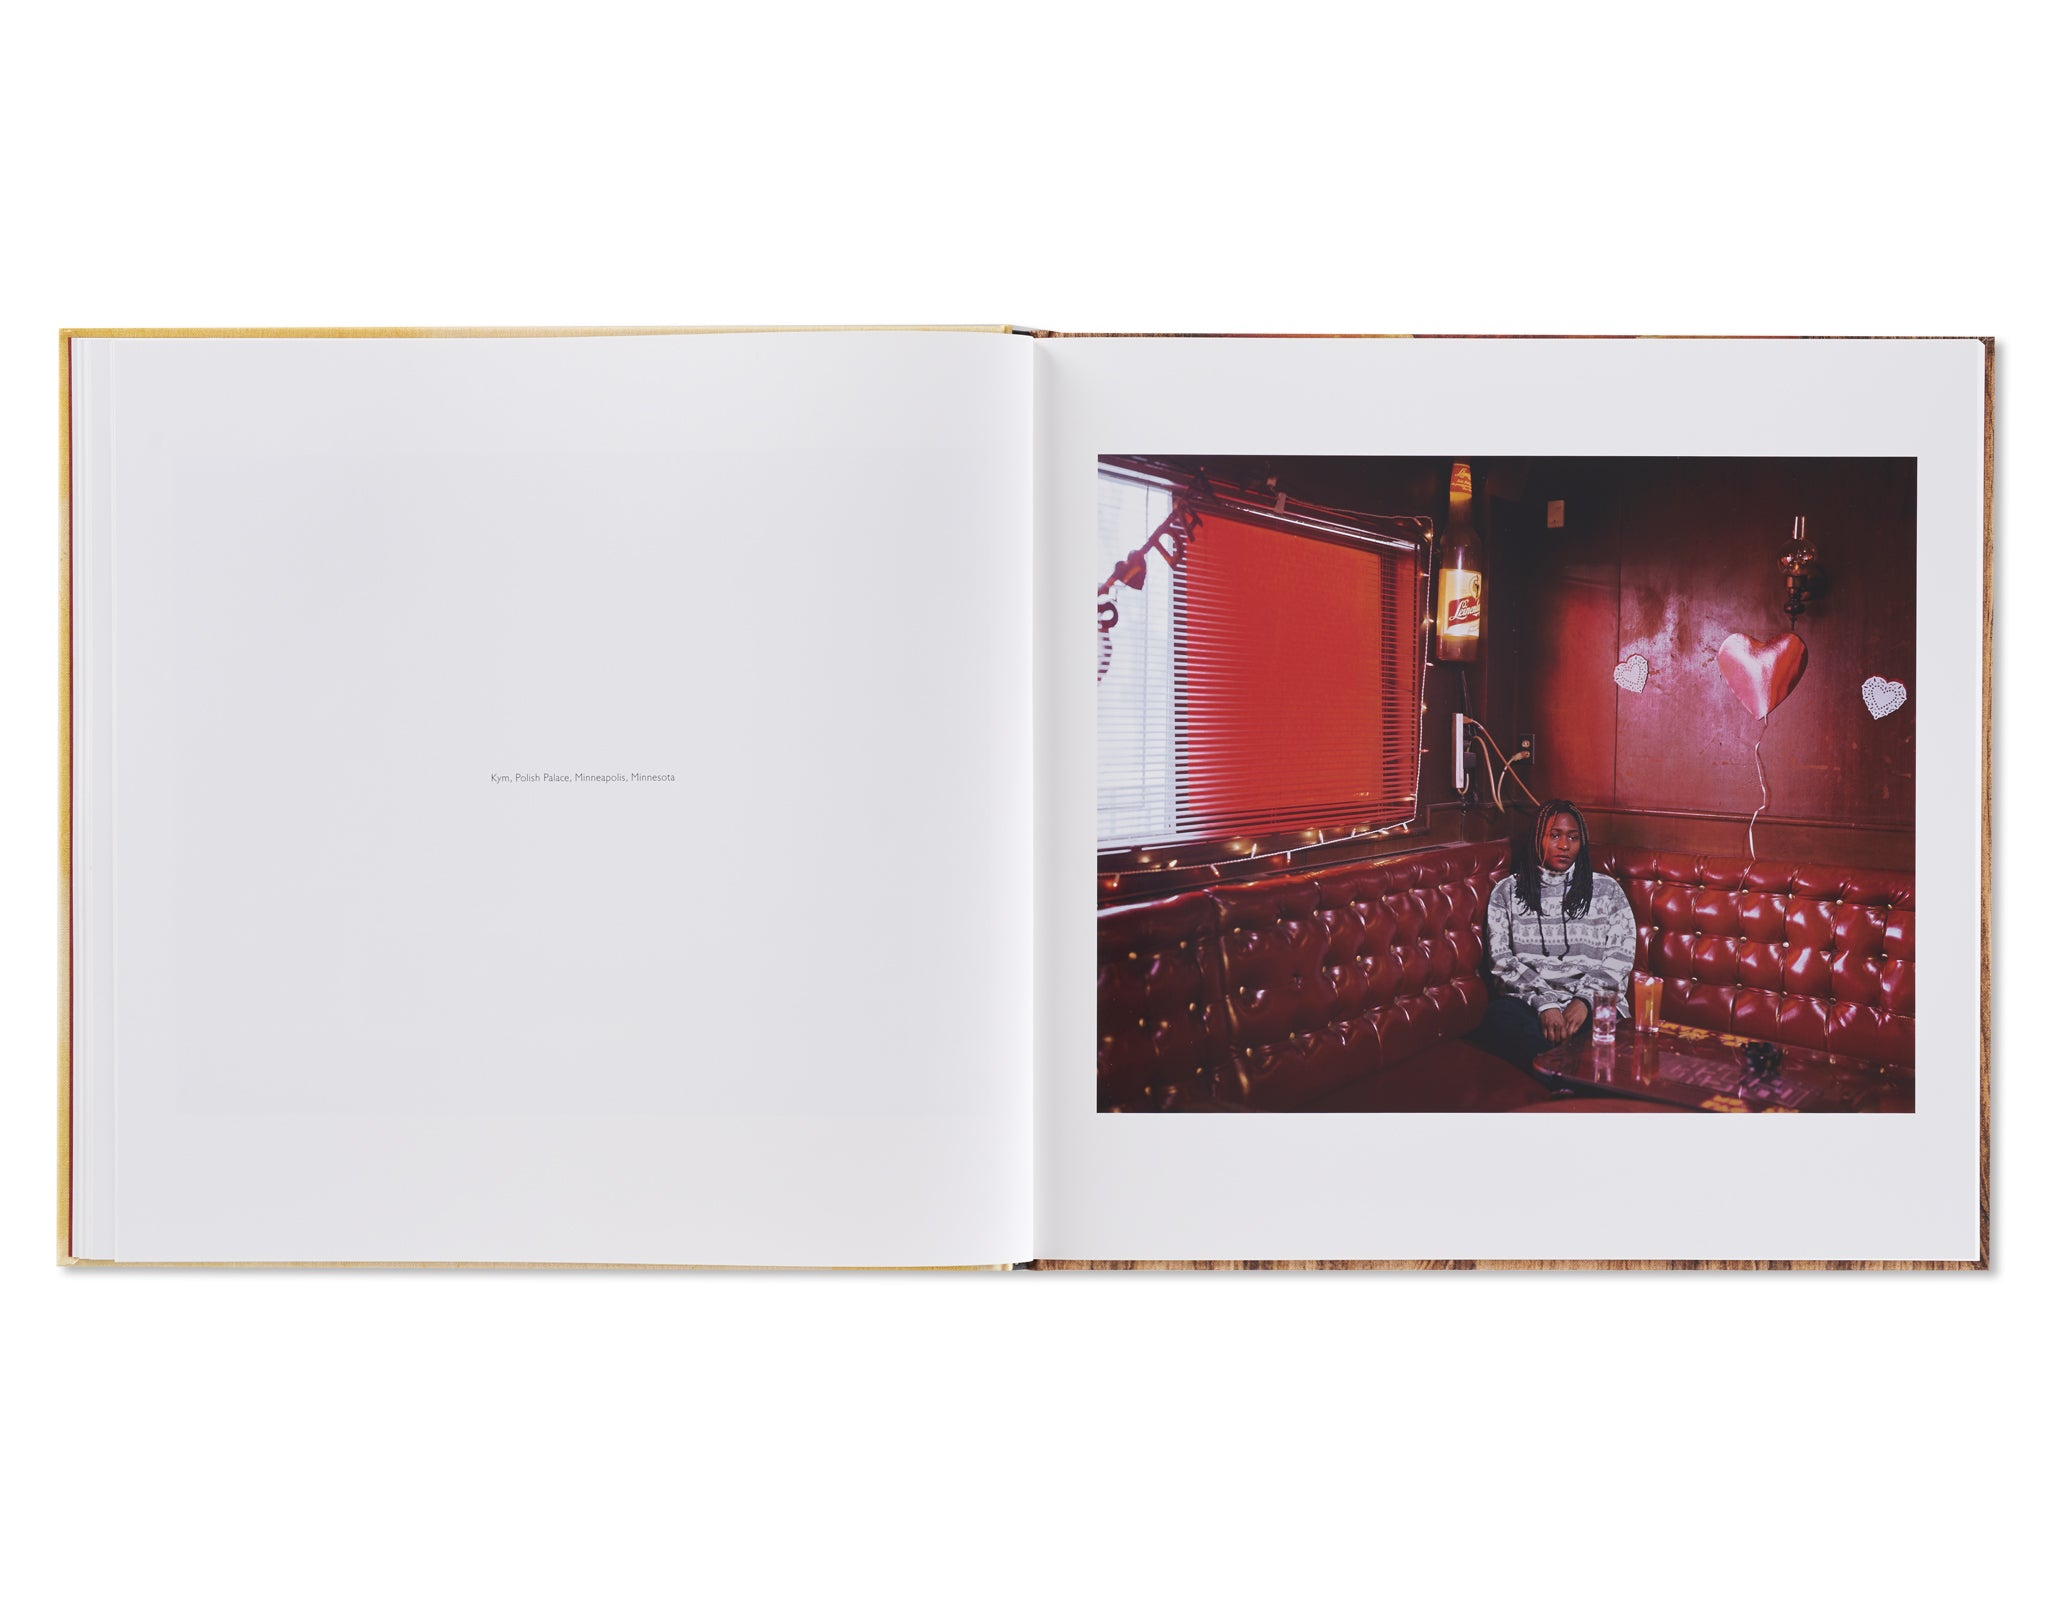 SLEEPING BY THE MISSISSIPPI by Alec Soth [SPECIAL EDITION]